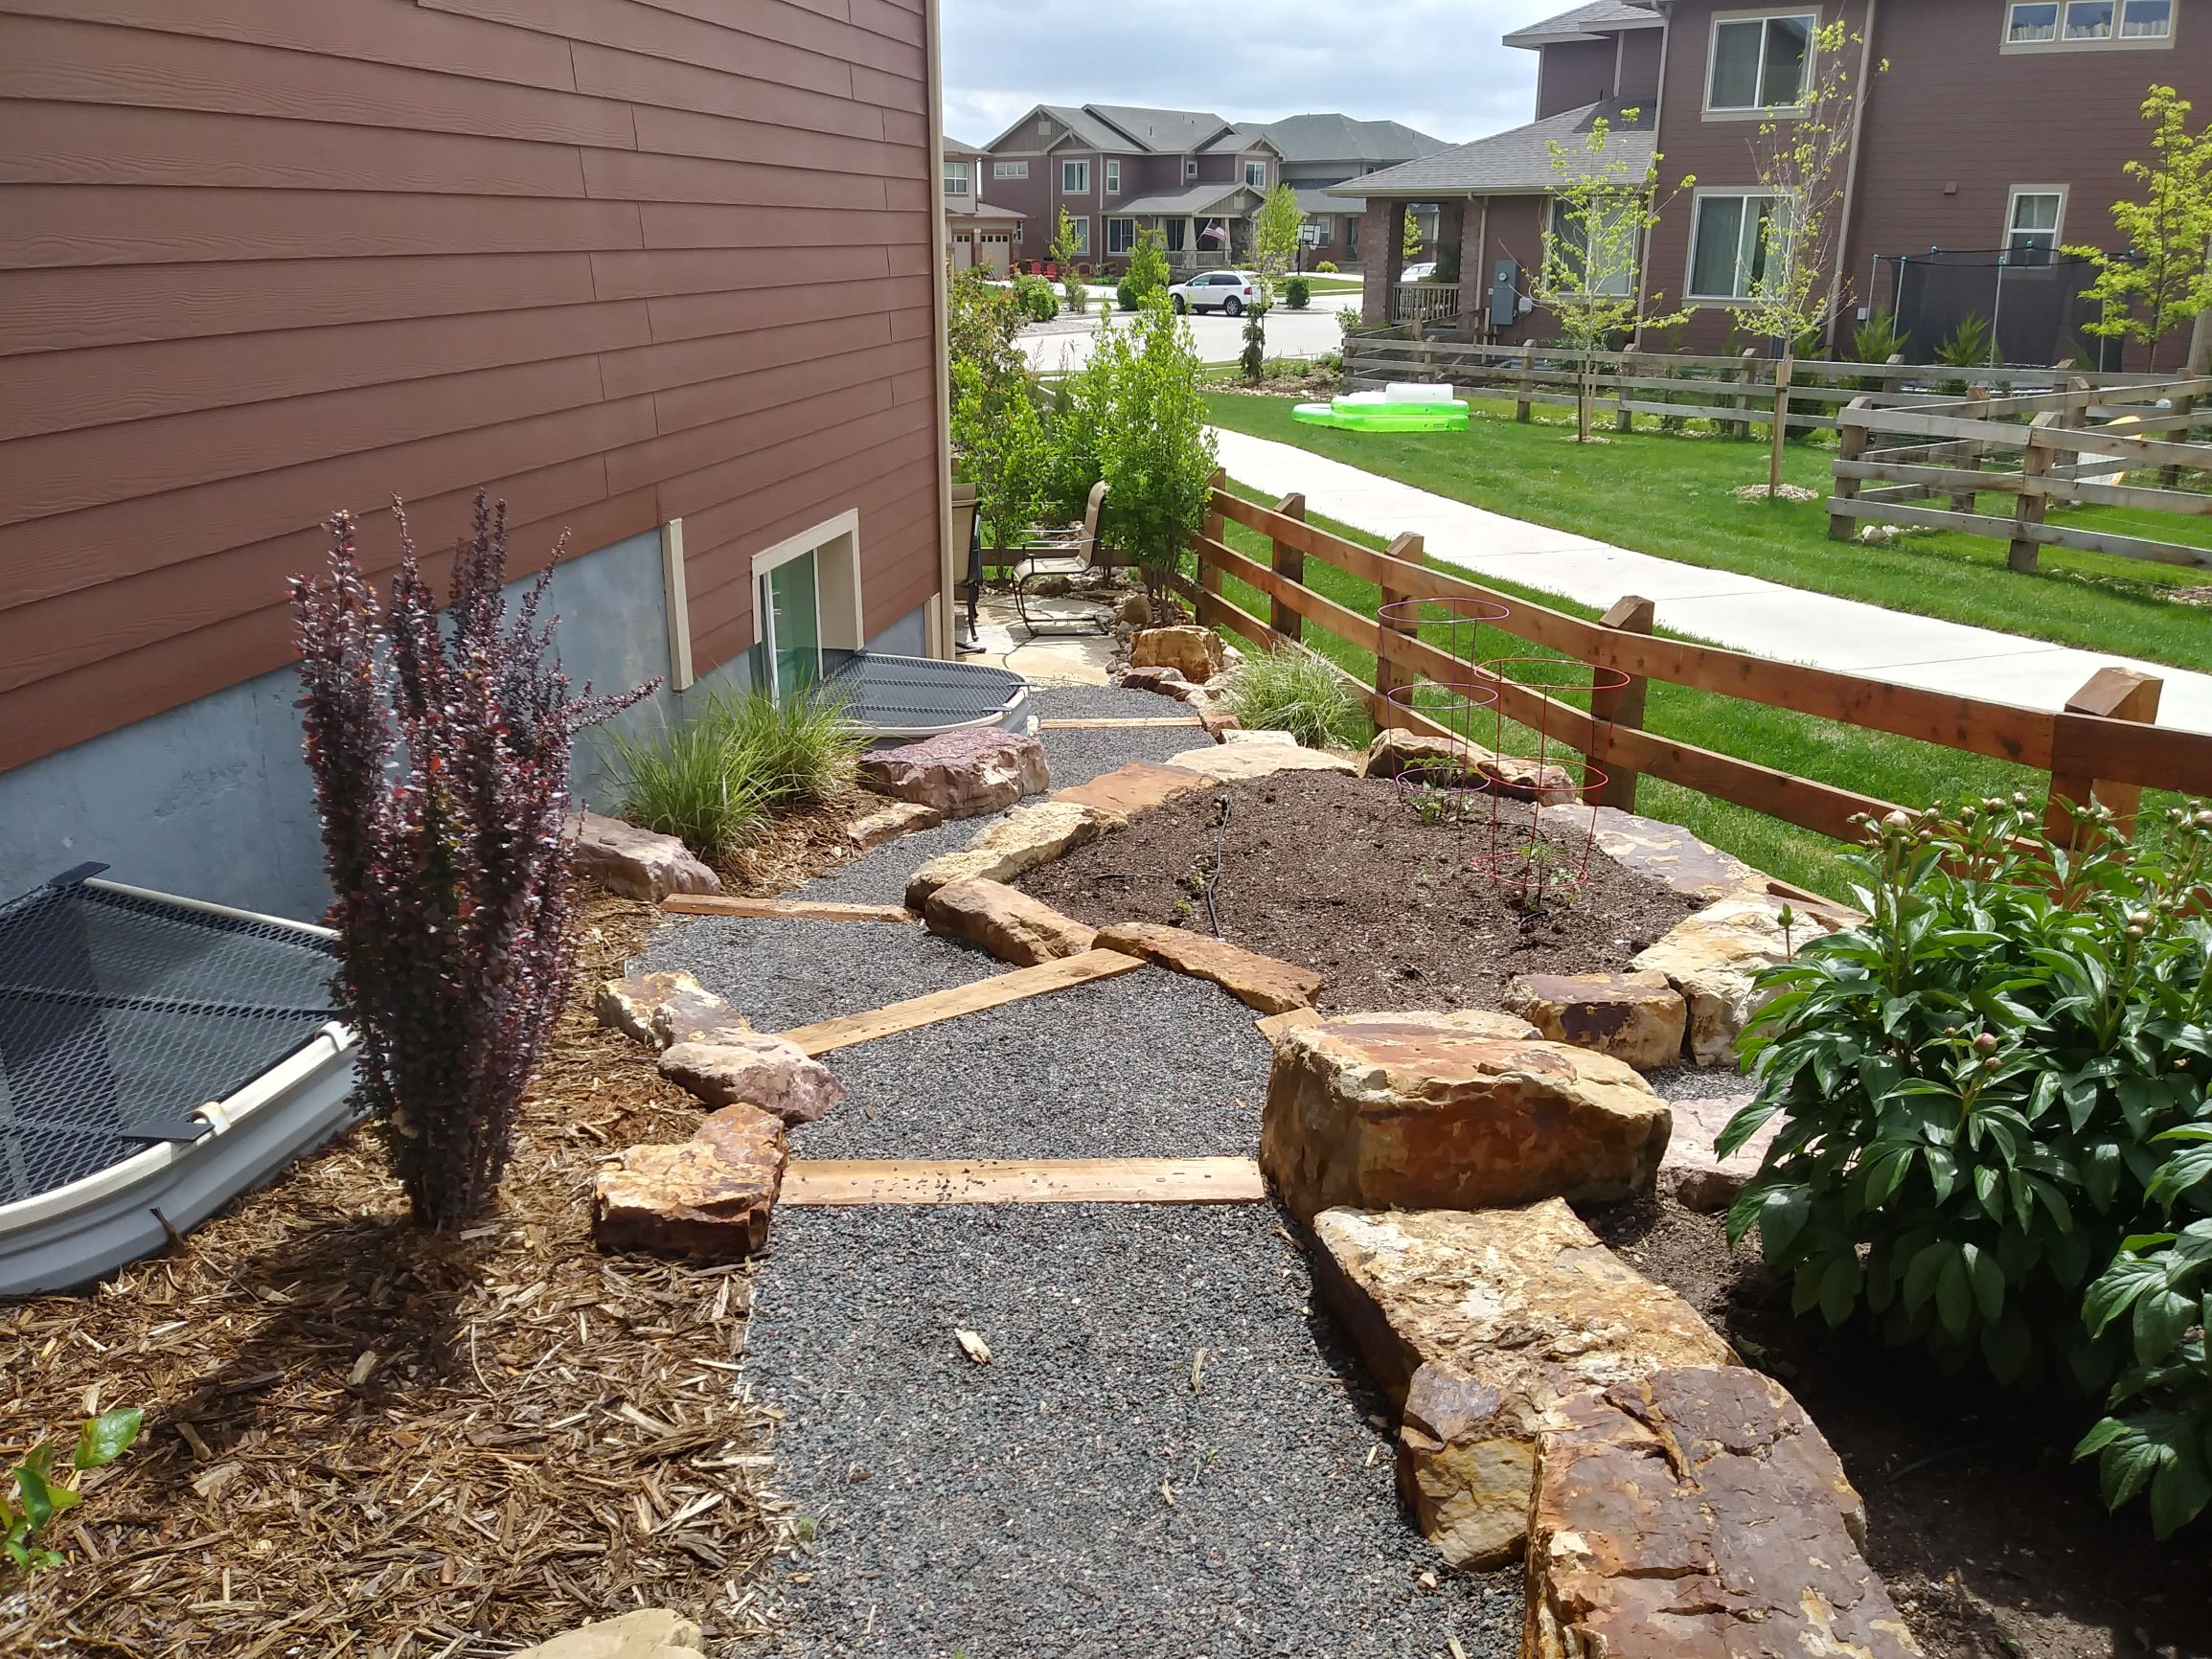 Gravel path with wood steps. Edged with large rocks and mulch beds with plants and bushes.